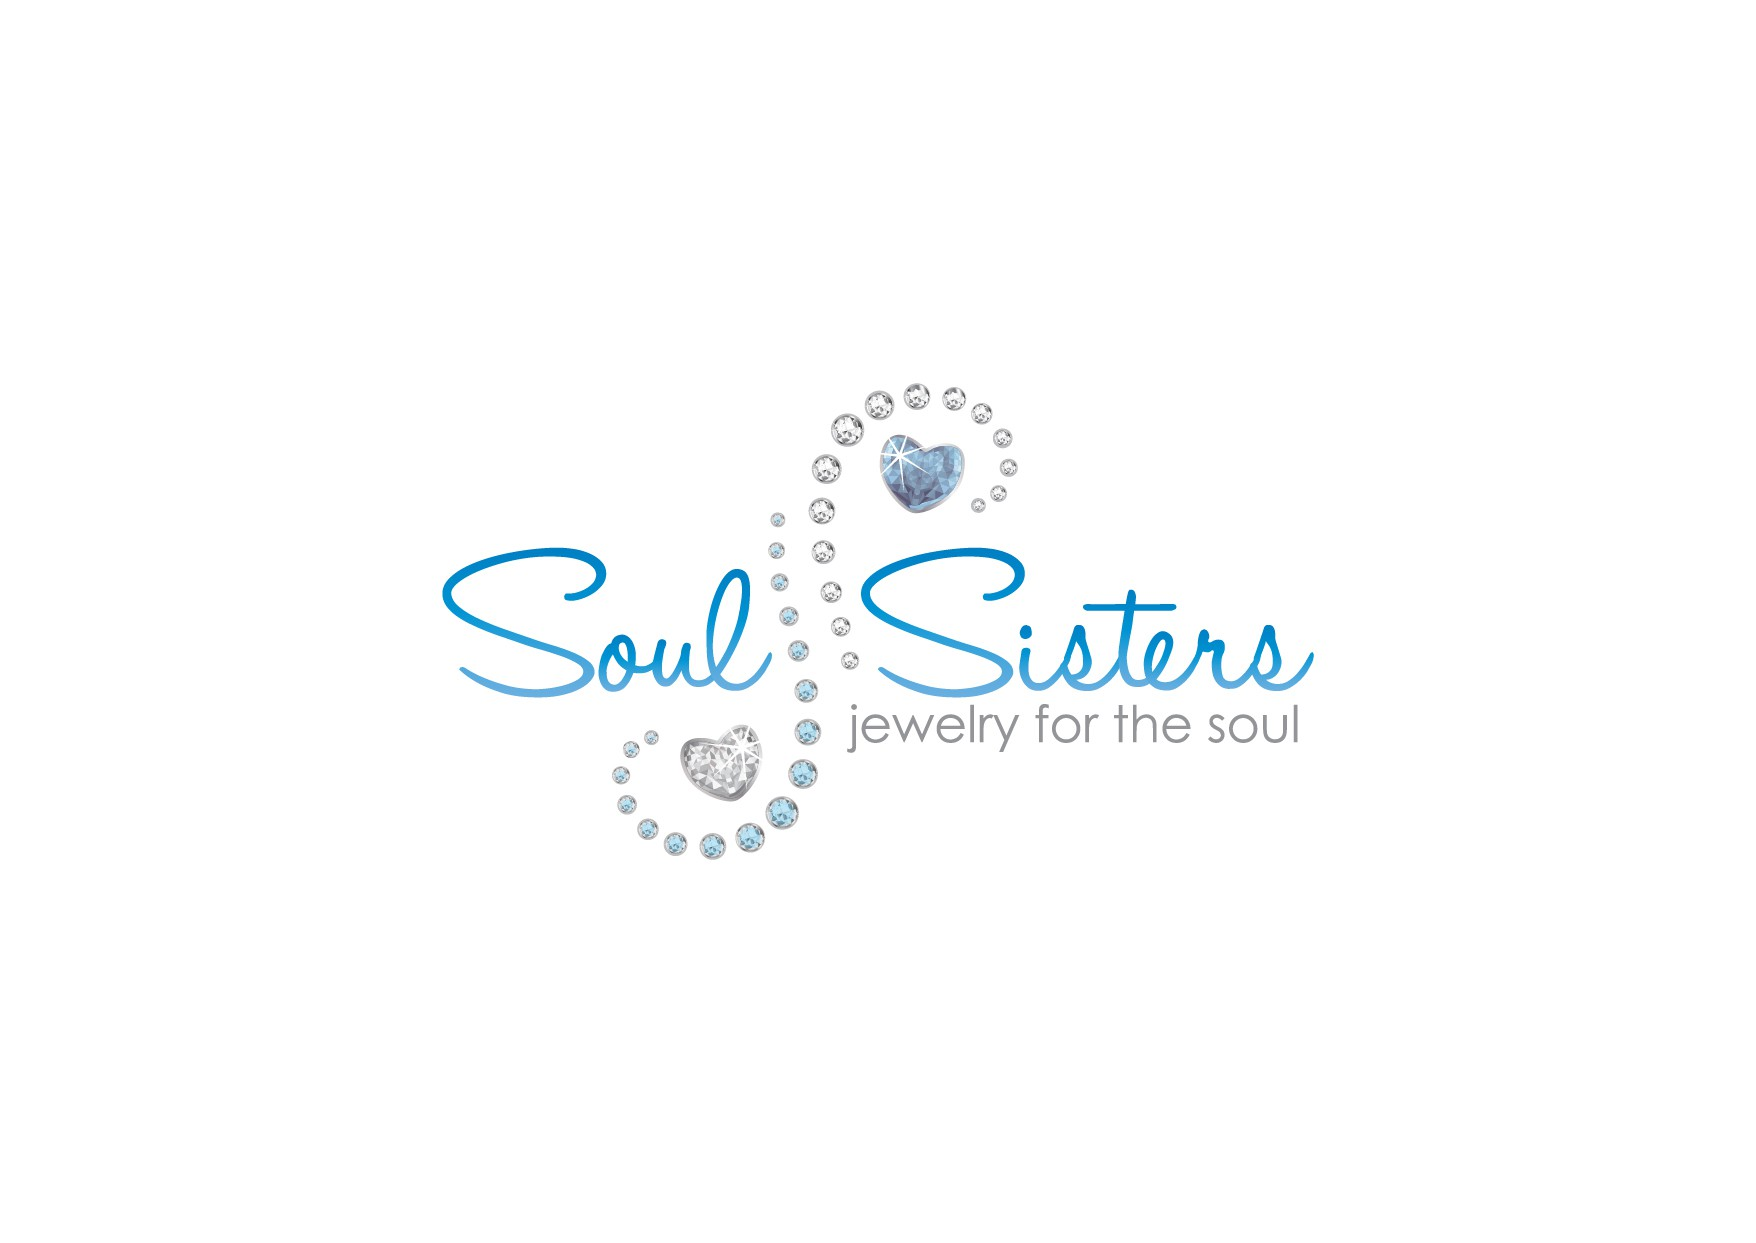 New logo wanted for Soul Sisters Jewelry